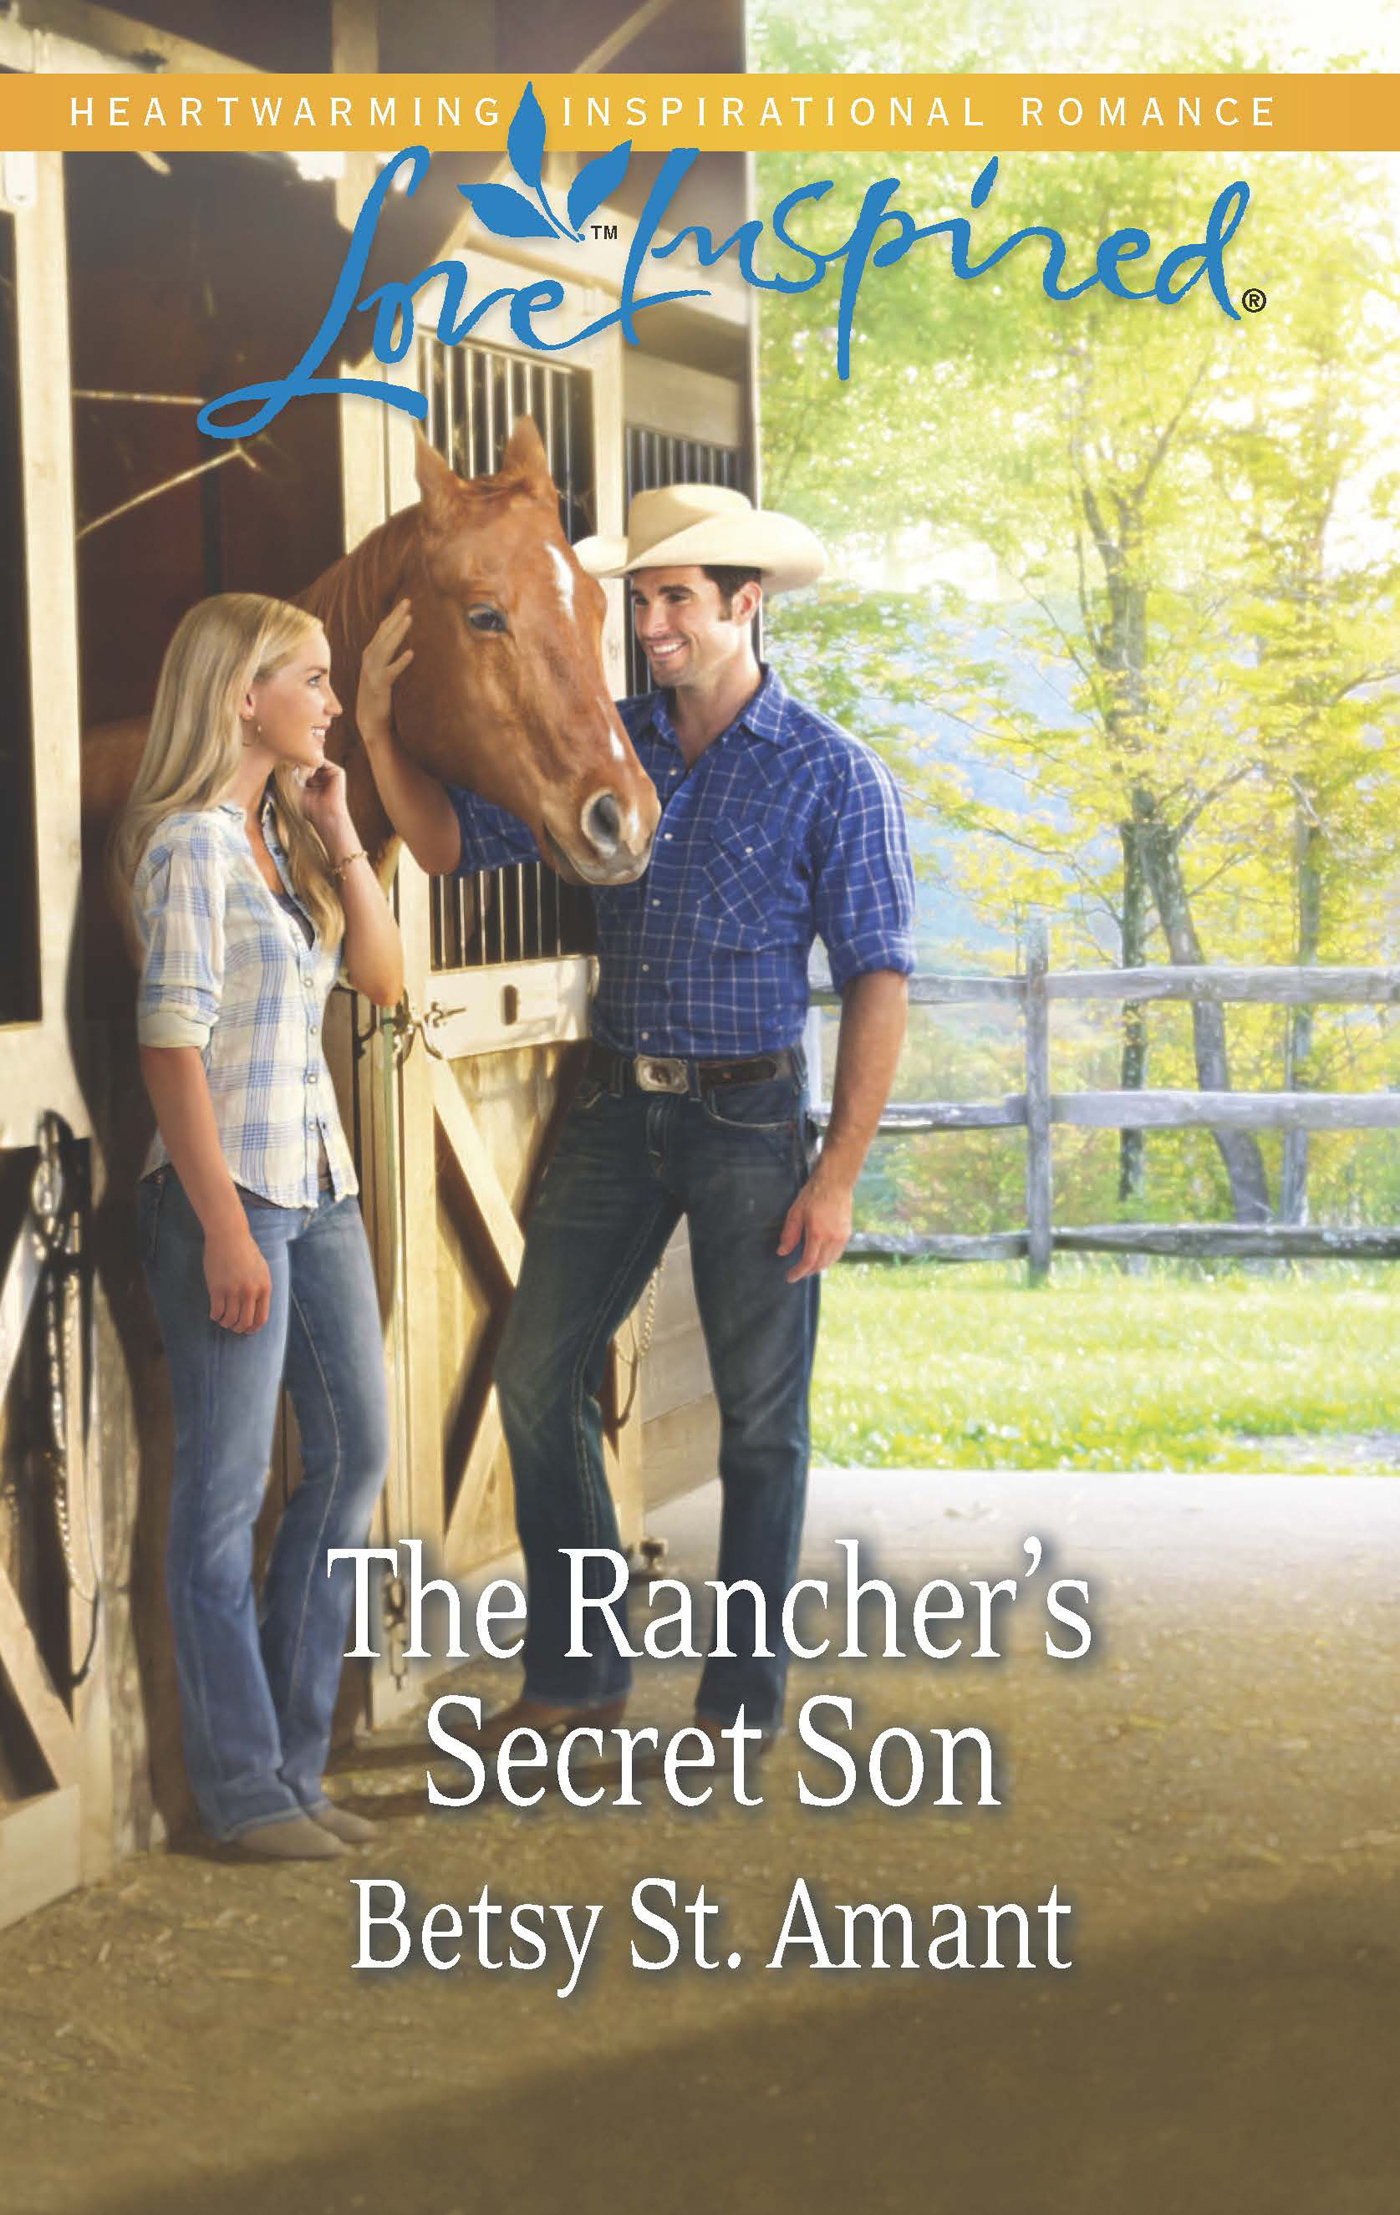 The Rancher's Secret Son (Mills & Boon Love Inspired)